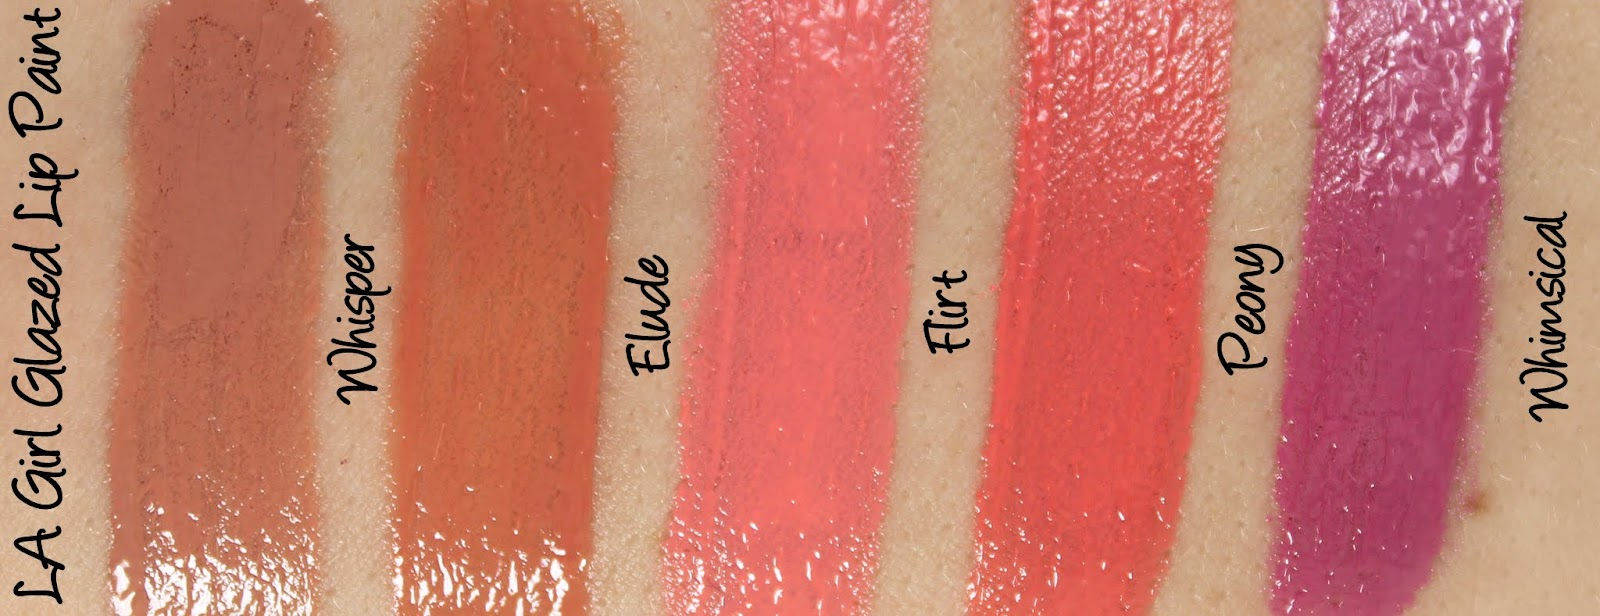 LA Girl Glazed Lip Paint - Whisper, Elude, Flirt, Peony and Whimsical Swatches & Review